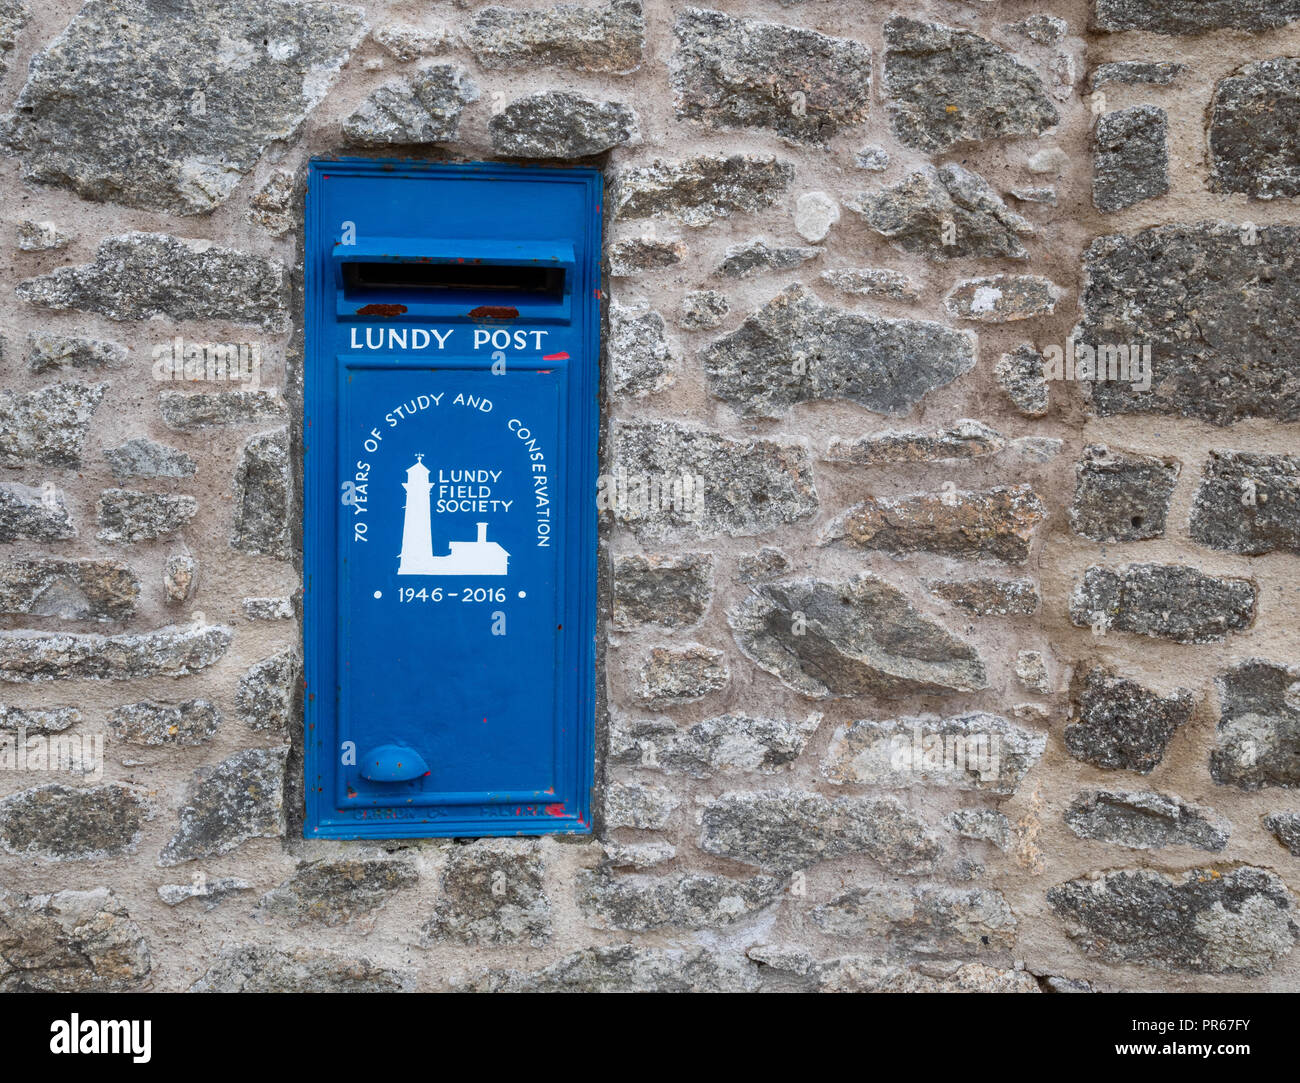 Blue post box on Lundy island which has its own postal service - Stock Image